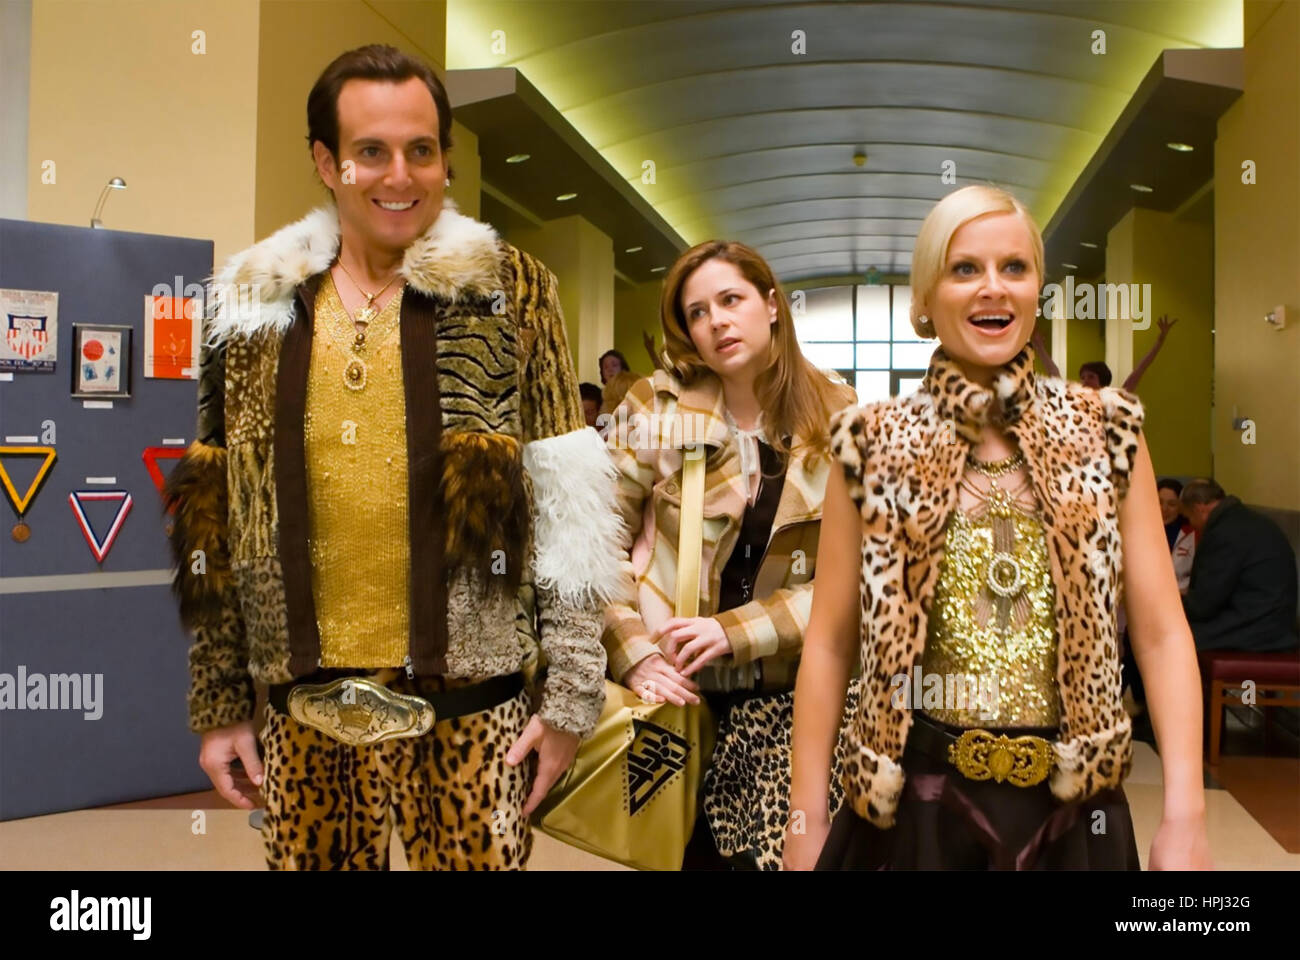 BLADES OF GLORY 2007 DreamWorks film with from left: Will Arnett, Amy Poehler,  Jenna Fischer - Stock Image